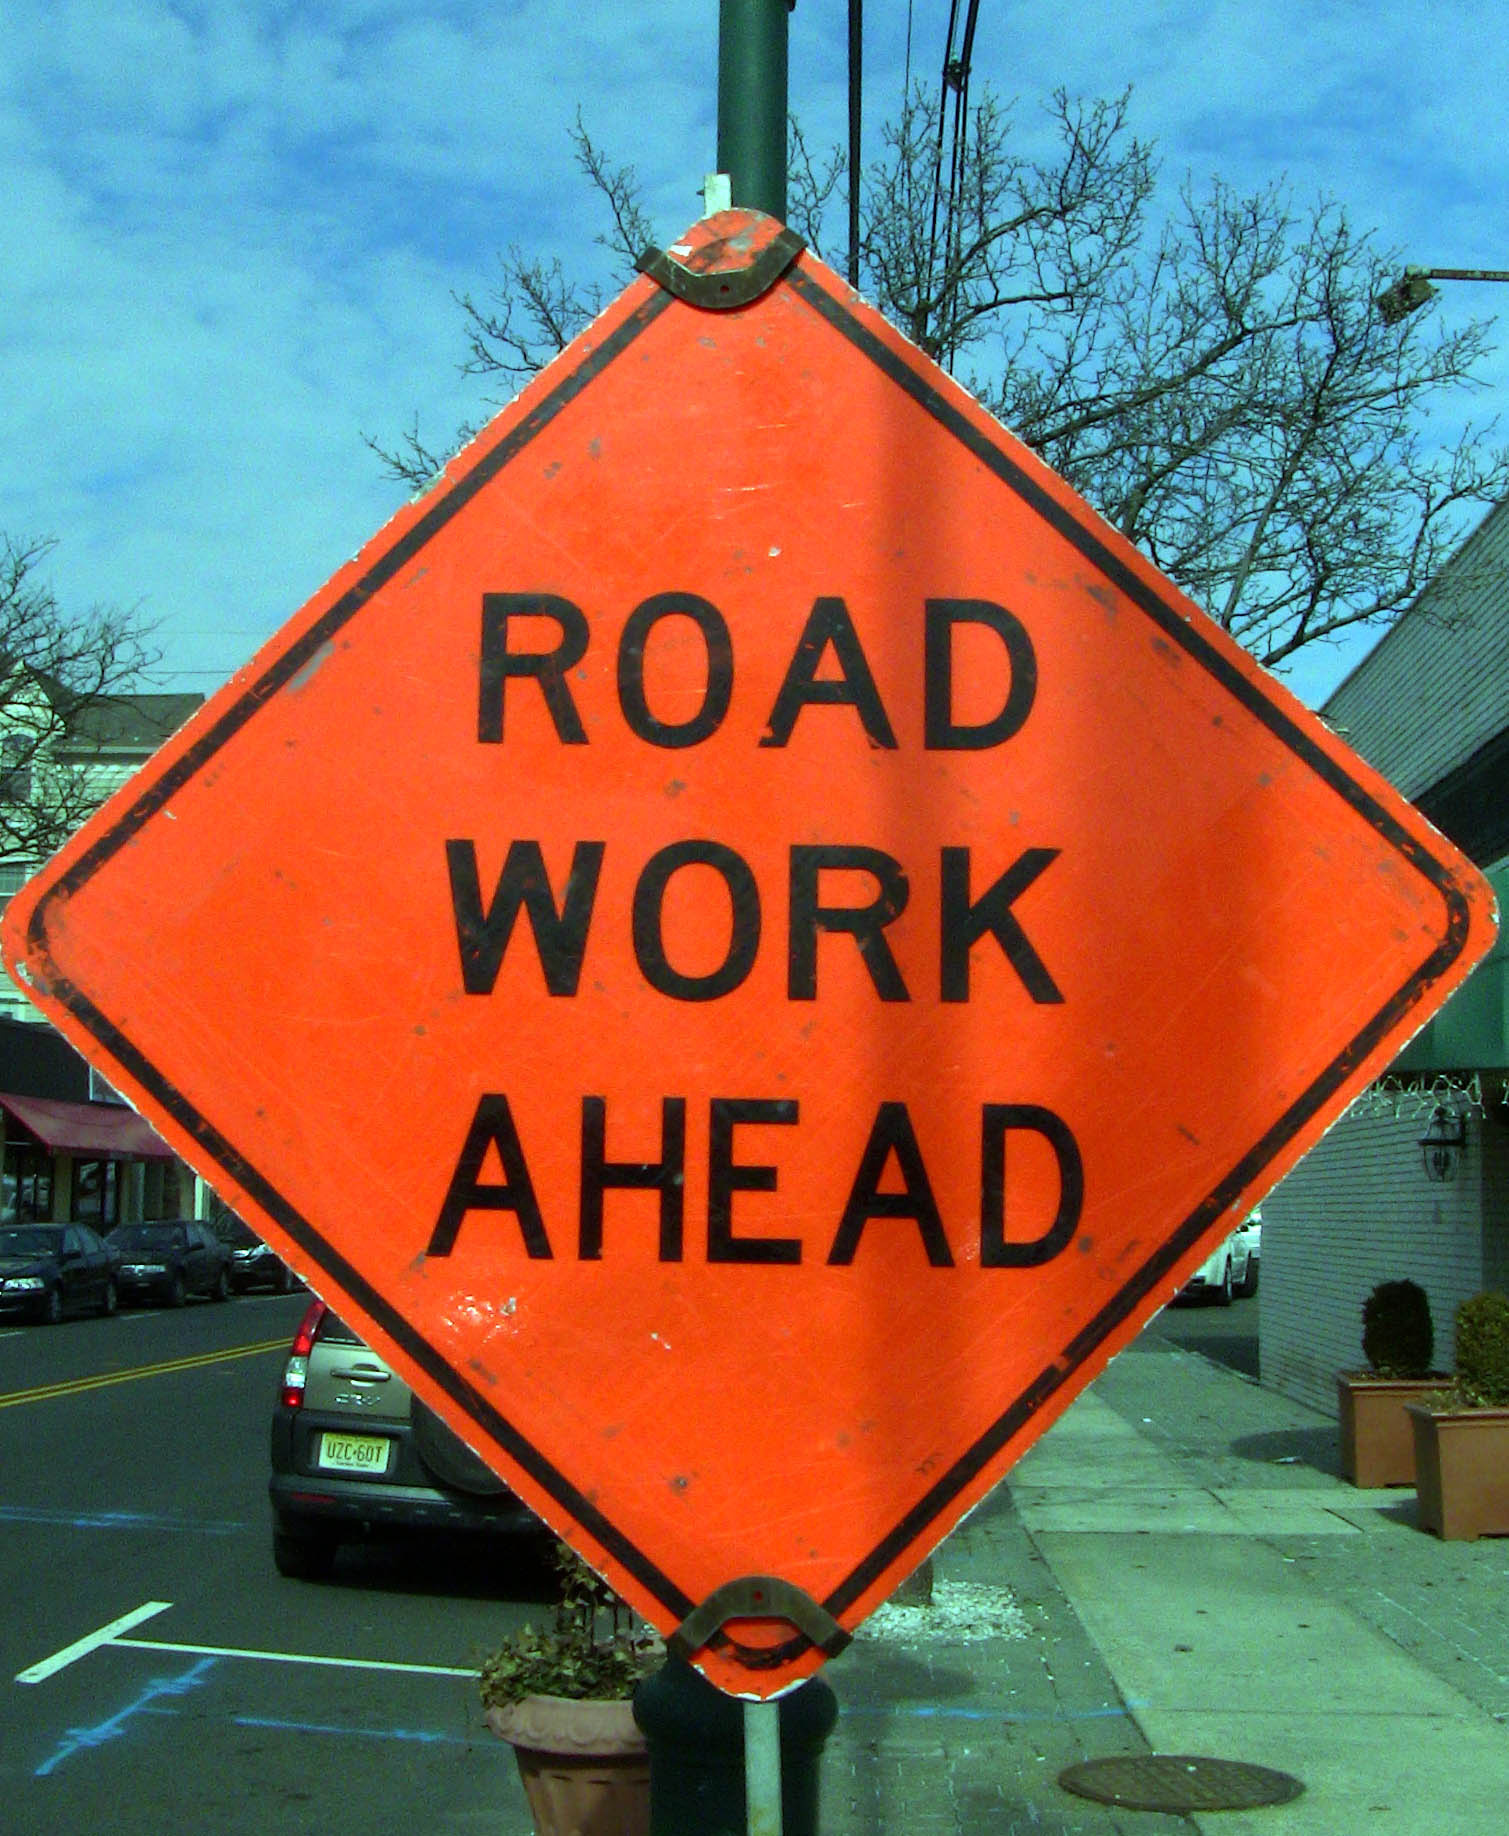 a5a8a75c309153635766_Road_Work_Ahead_sign.jpg